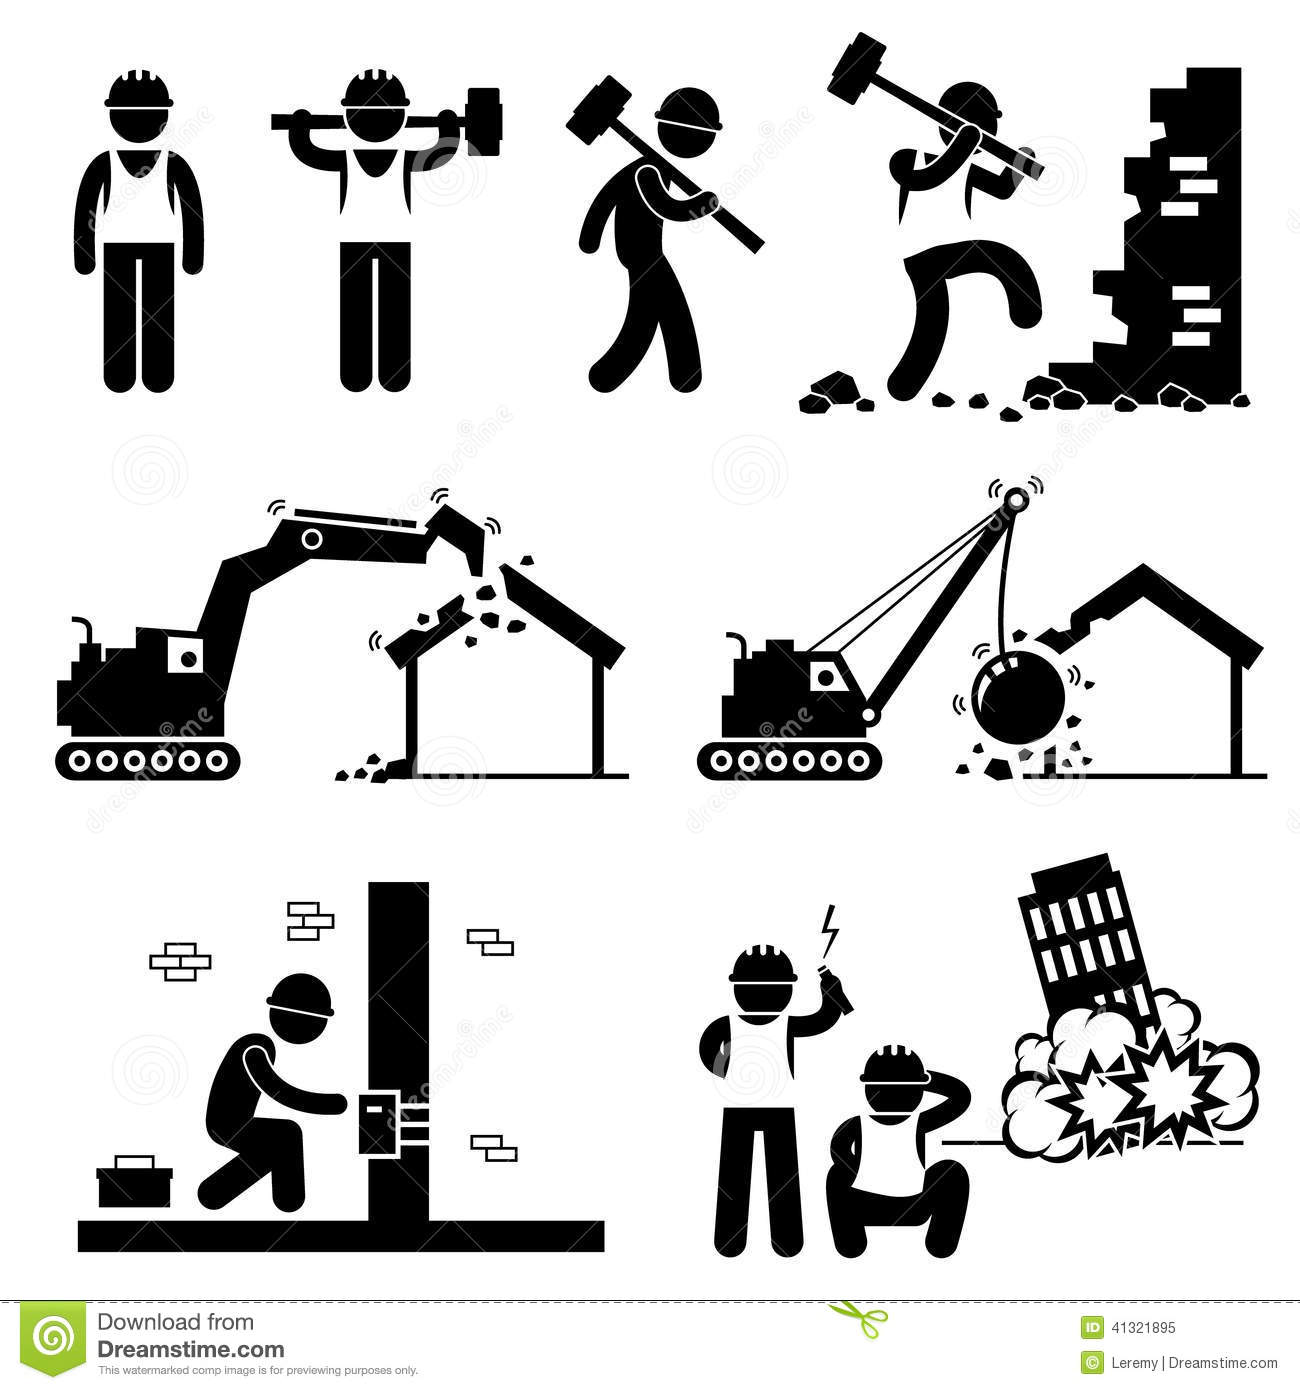 File Spark gap schematic together with 68gv53 moreover Inspiration 20 Logos Autour Du Chat in addition Stock Illustration Demolition Worker Demolish Building Icon Cliparts Set Human Pictogram Representing Smashing Wall Hammer Destroying House Image41321895 in addition Royalty Free Stock Image Schematic Diagram Image5150286. on electrical graphics